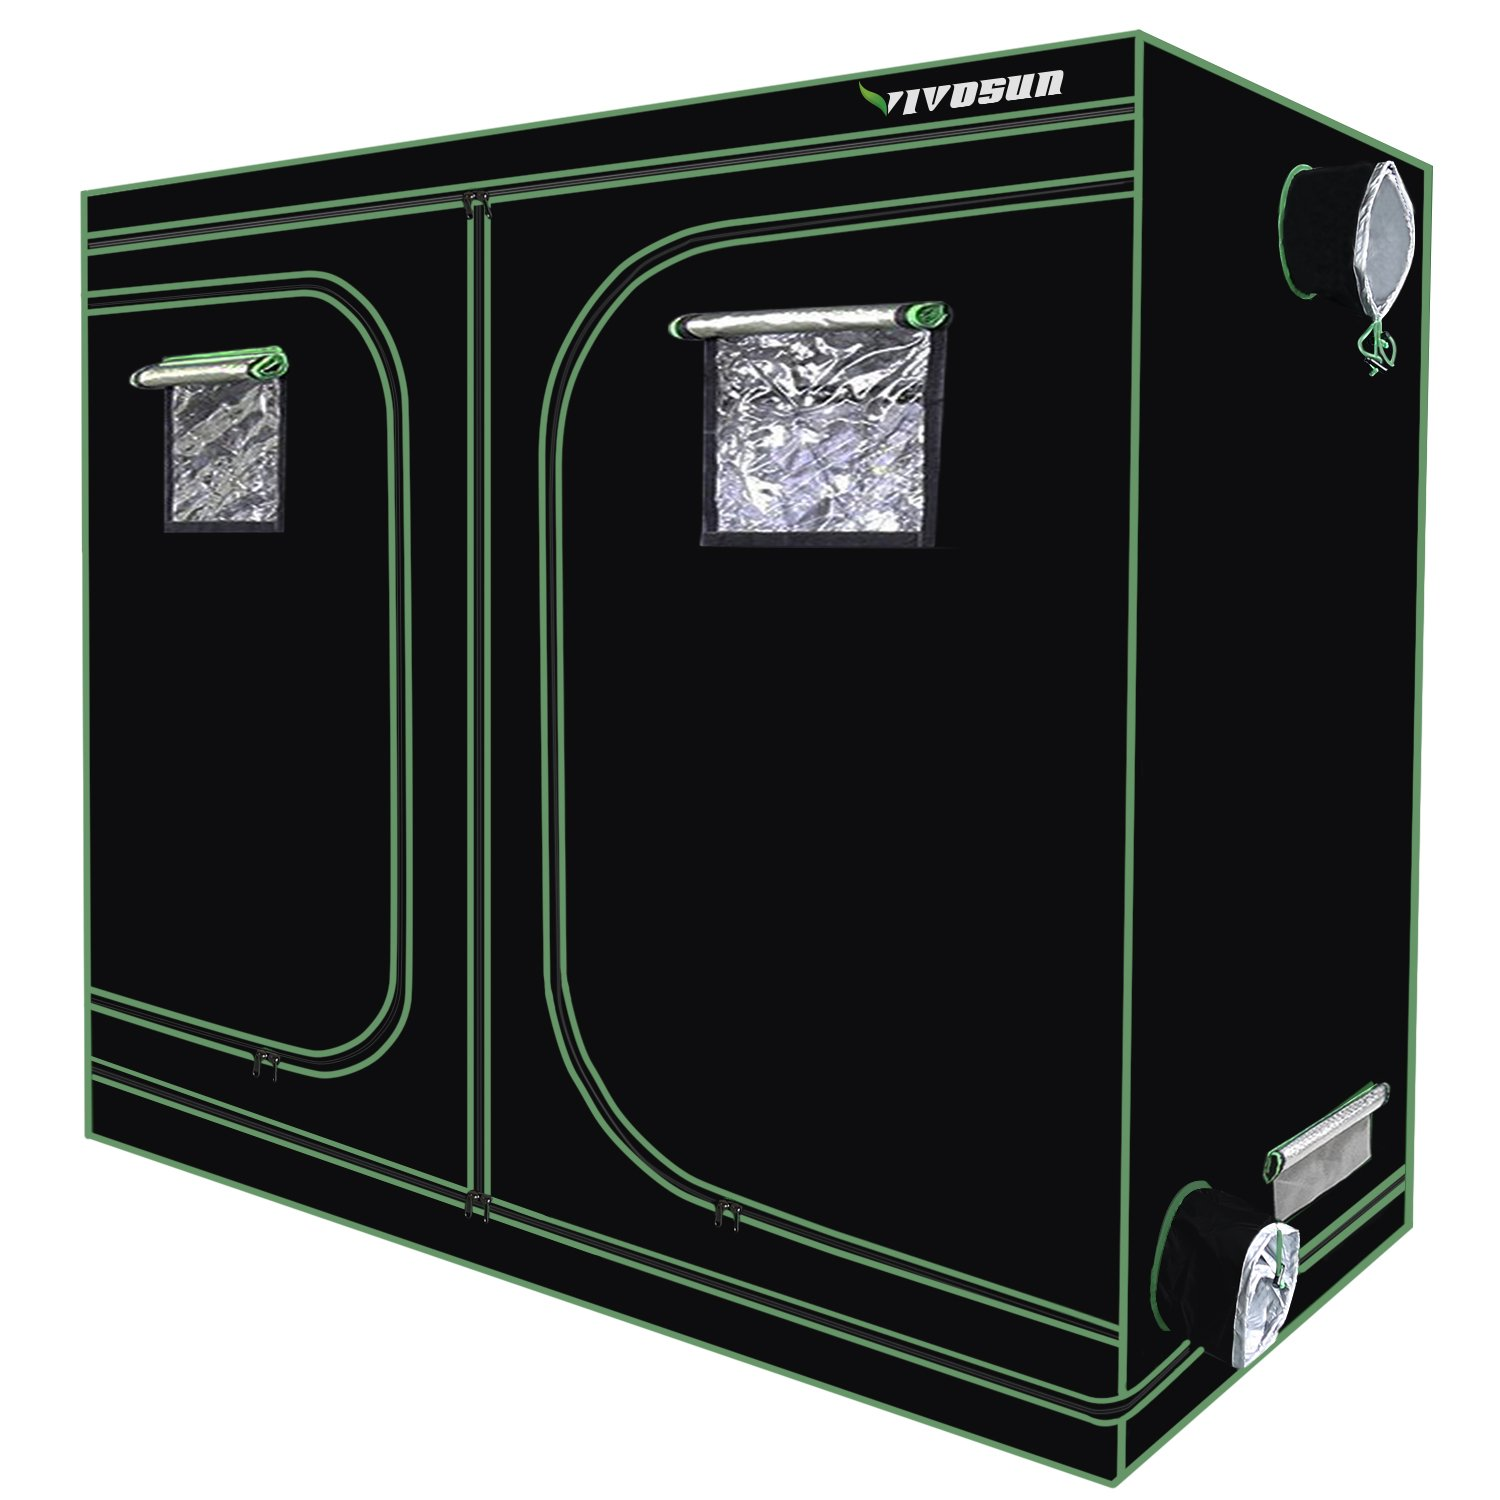 VIVOSUN-- 4'x8' Grow Tent w/ Observation Window and Floor Tray